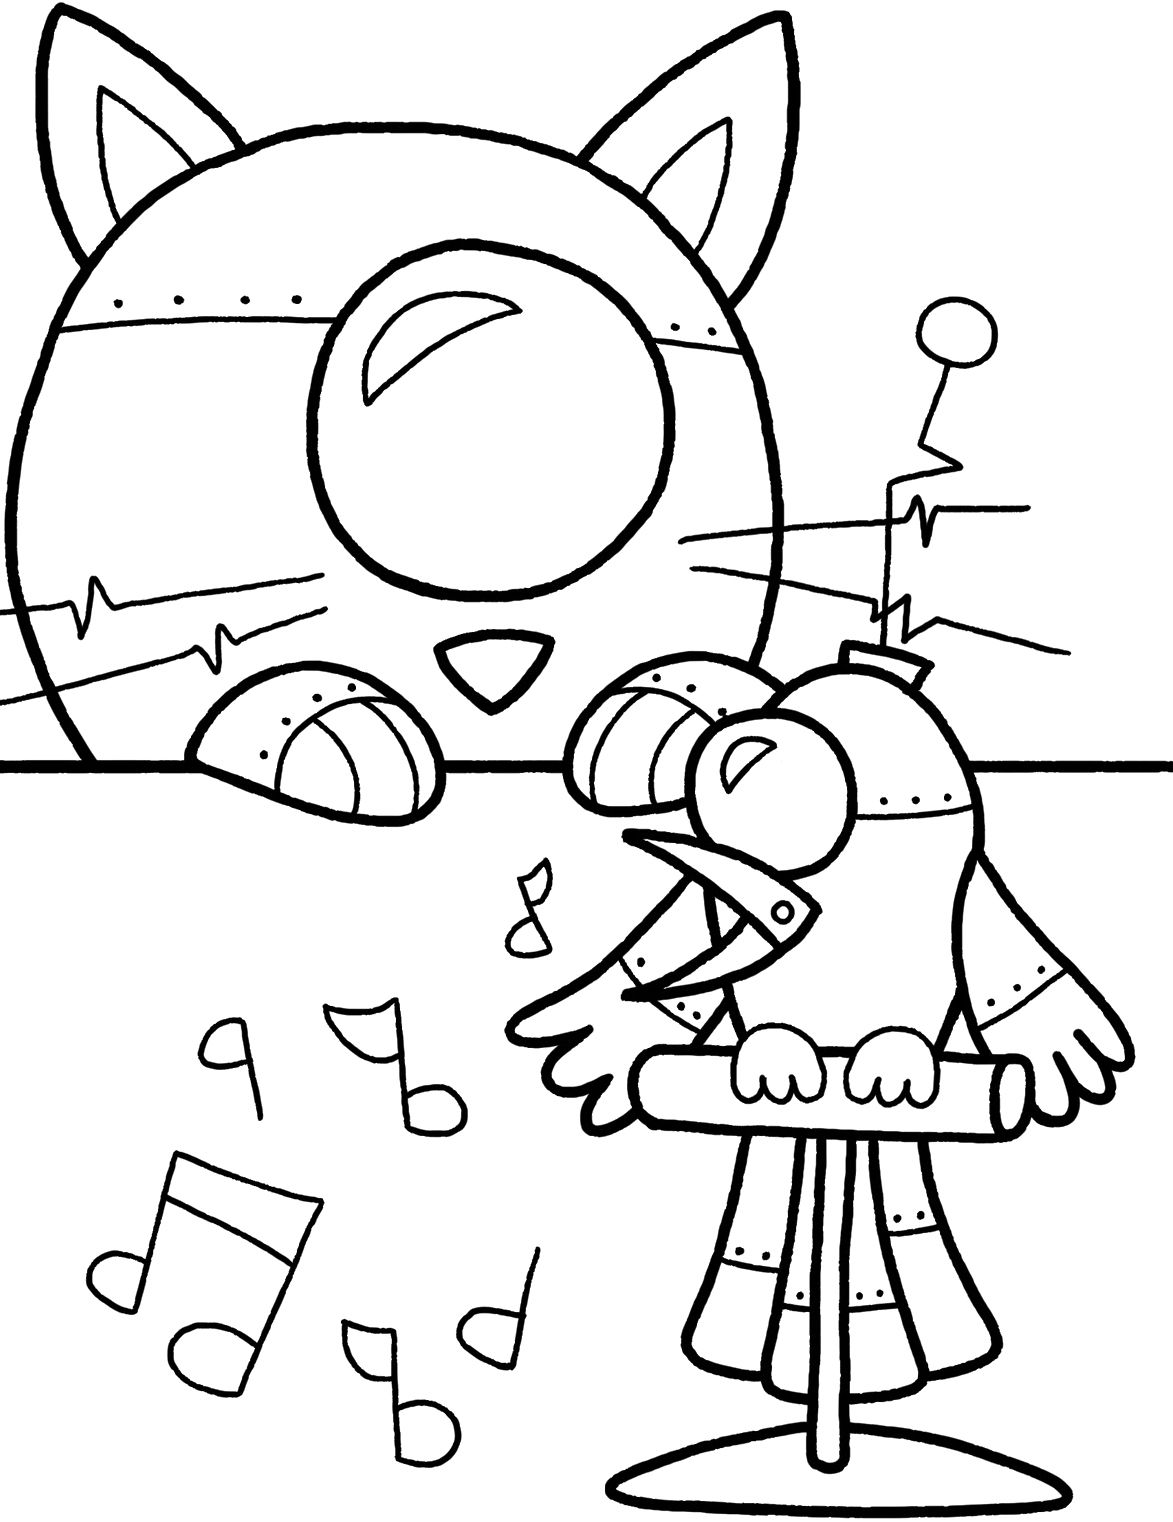 Coloring Pages Robot Coloring Pages Online New 99 Printable